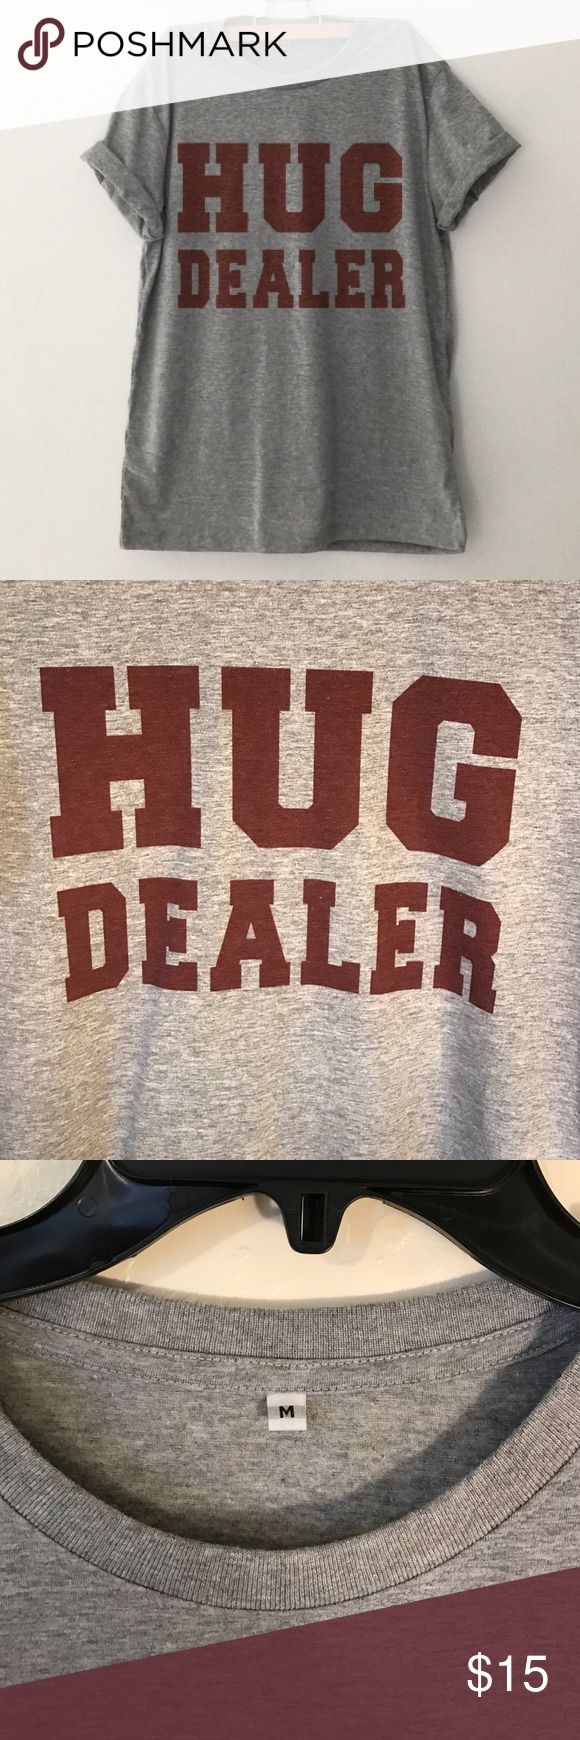 "Funny ""Hug Dealer"" T-shirt ➡️Funny ""Hug Dealer"" T-shirt ➡️Women's size medium ➡️Excellent condition  ➡️Super soft & comfortable NO TRADES Bundle discounts ❤️Reasonable offers only please❤️ Tops Tees - Short Sleeve"